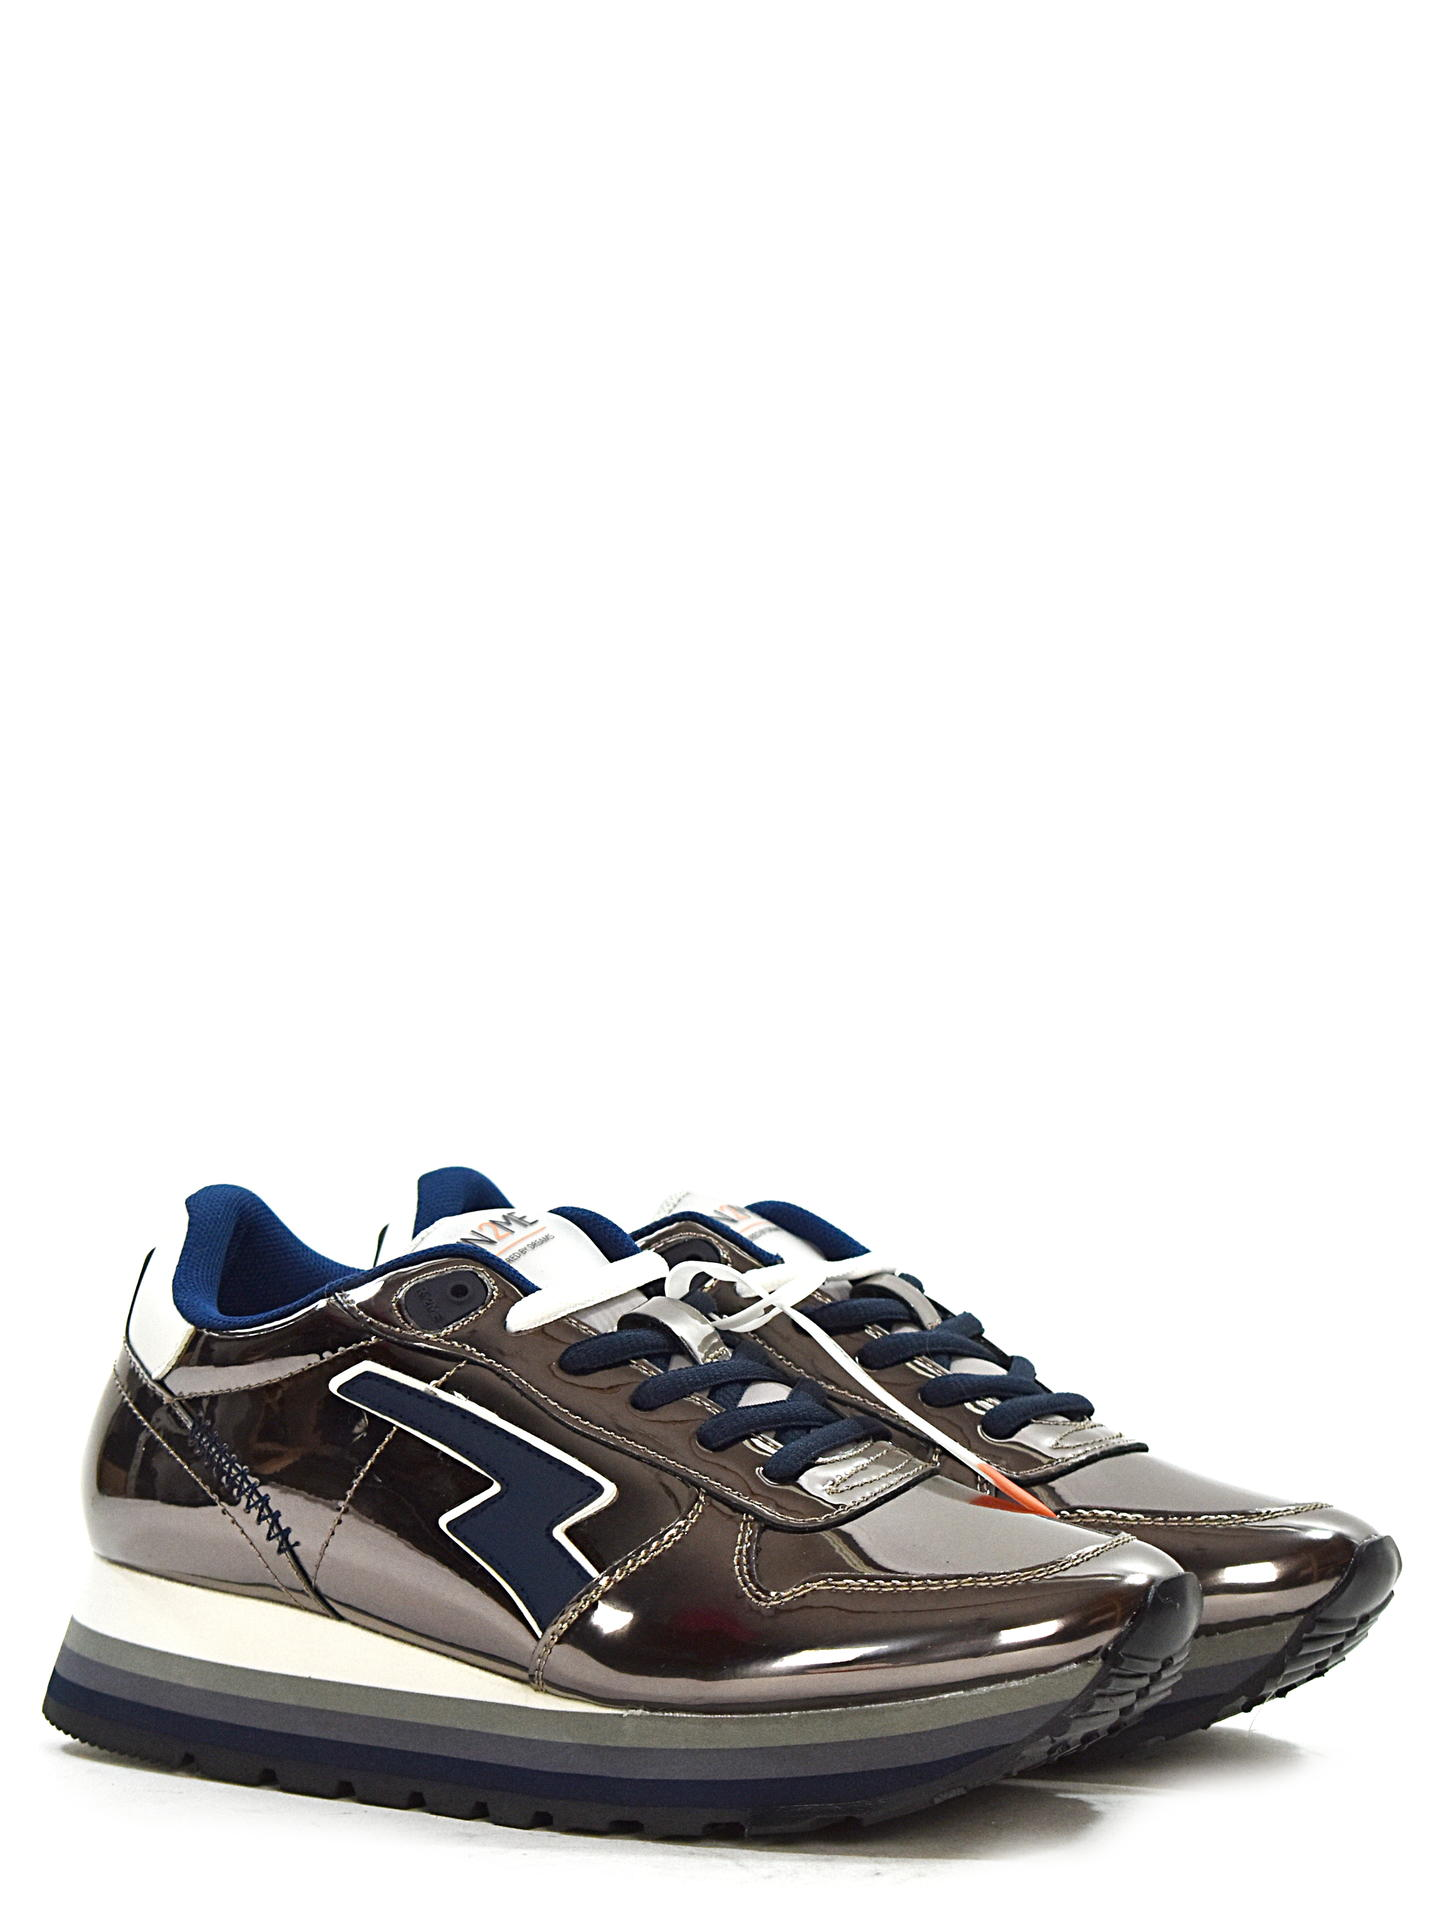 SNEAKERS RUN2ME 8303 ANTRACITE